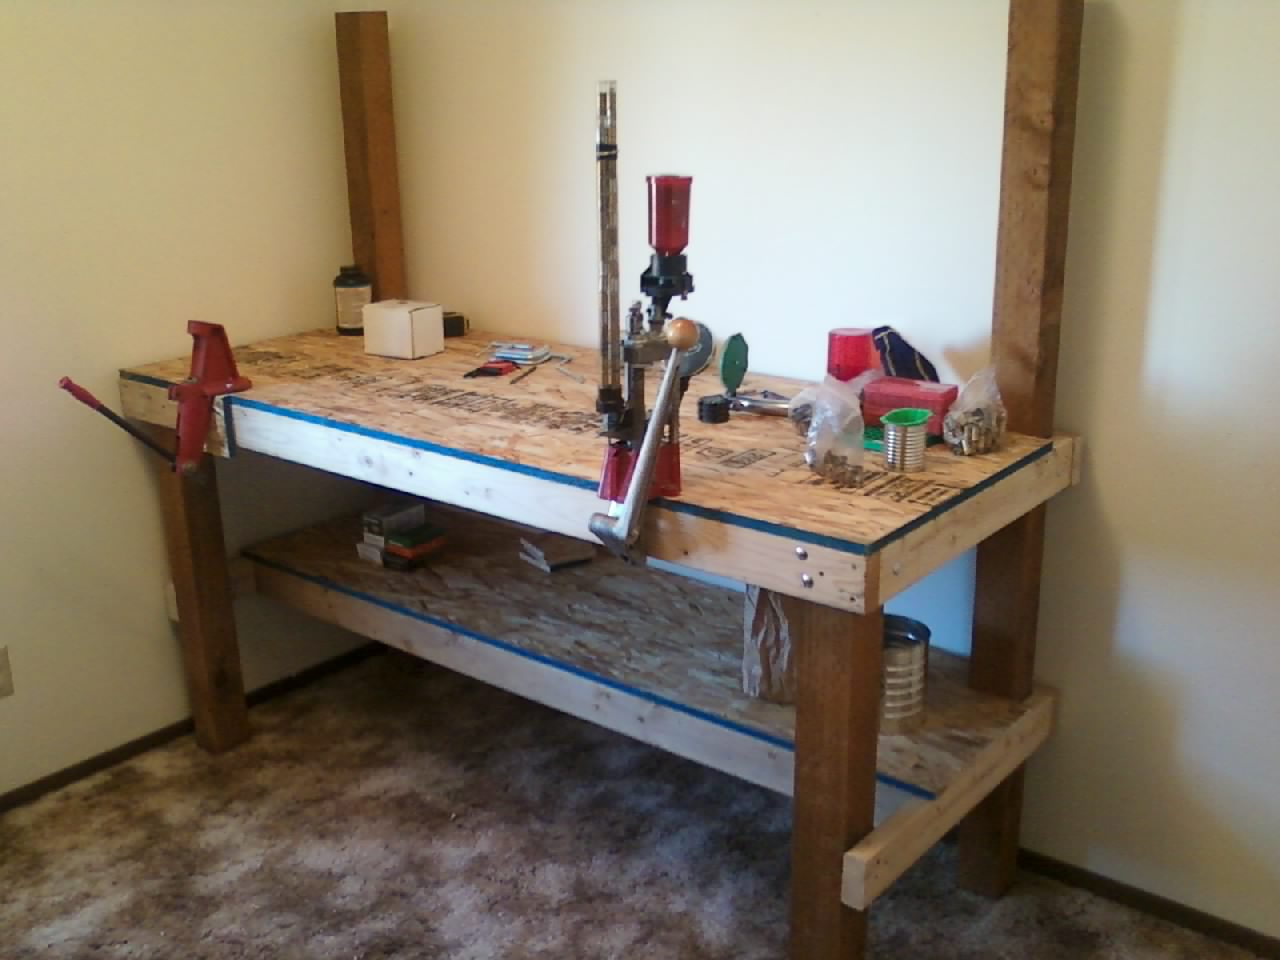 Reloading Benches | Reloading Desk | Reloading Table for Sale